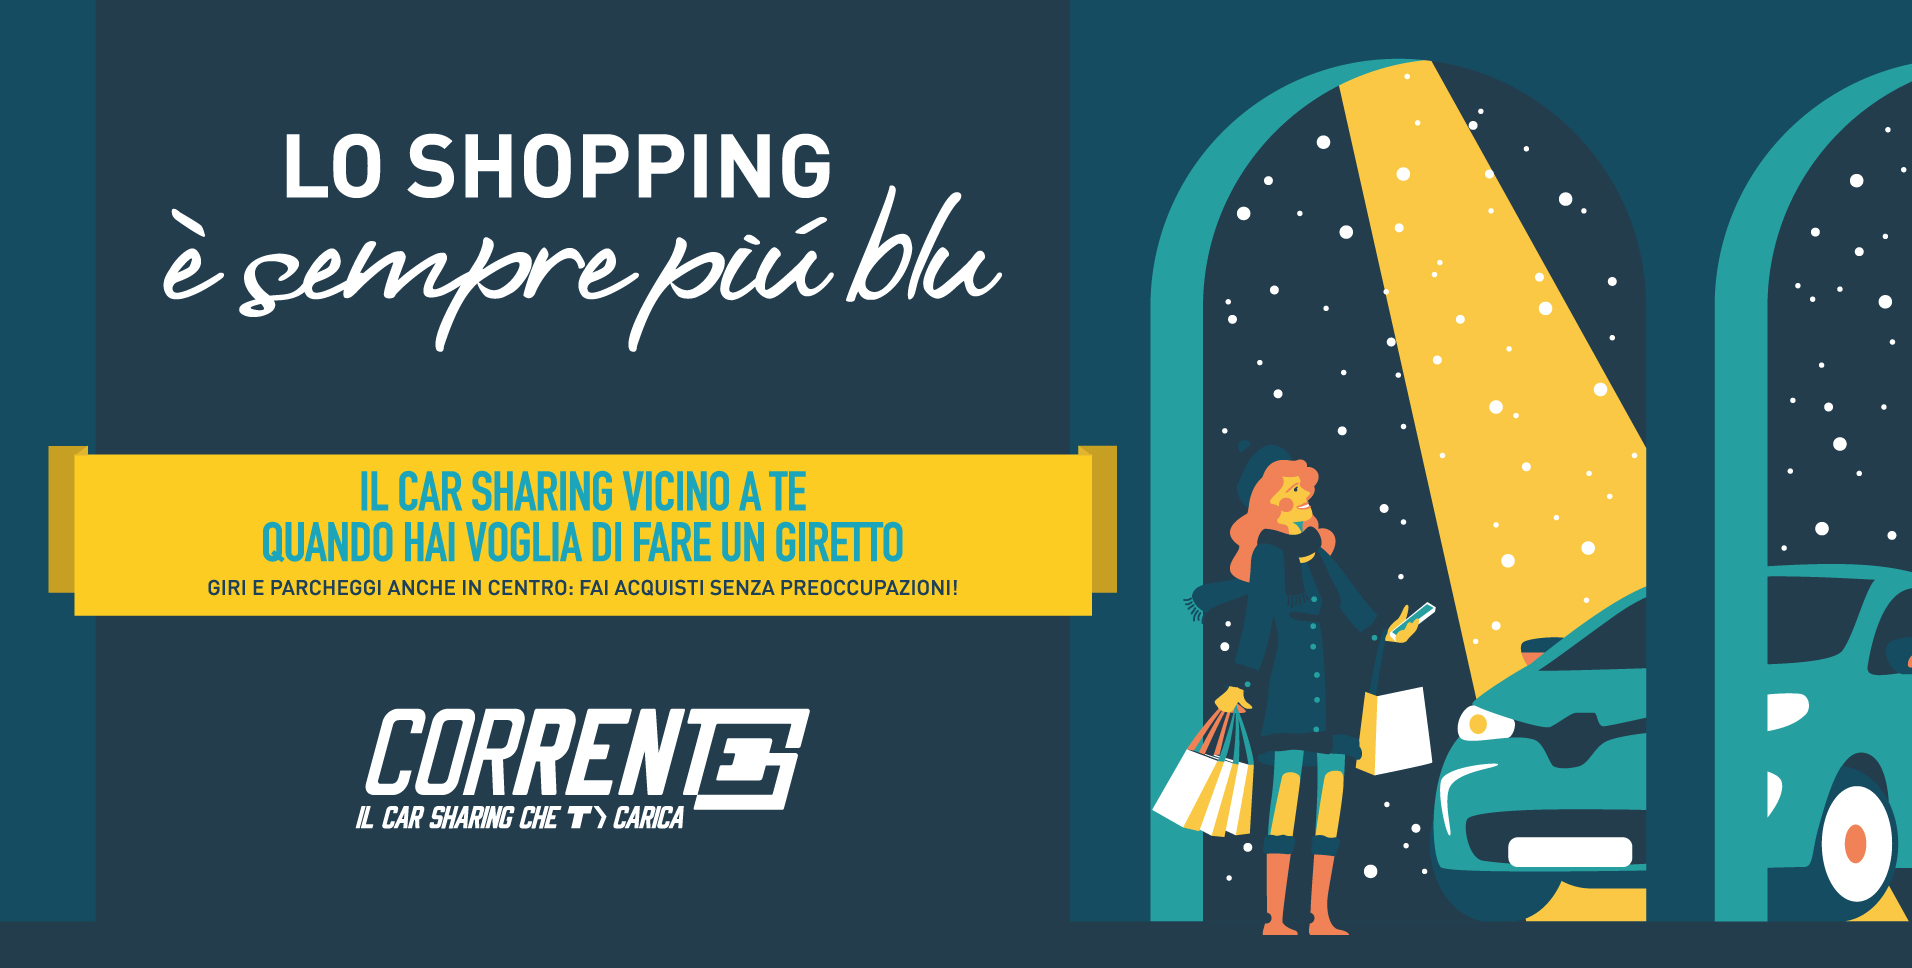 Corrente - Black Friday!